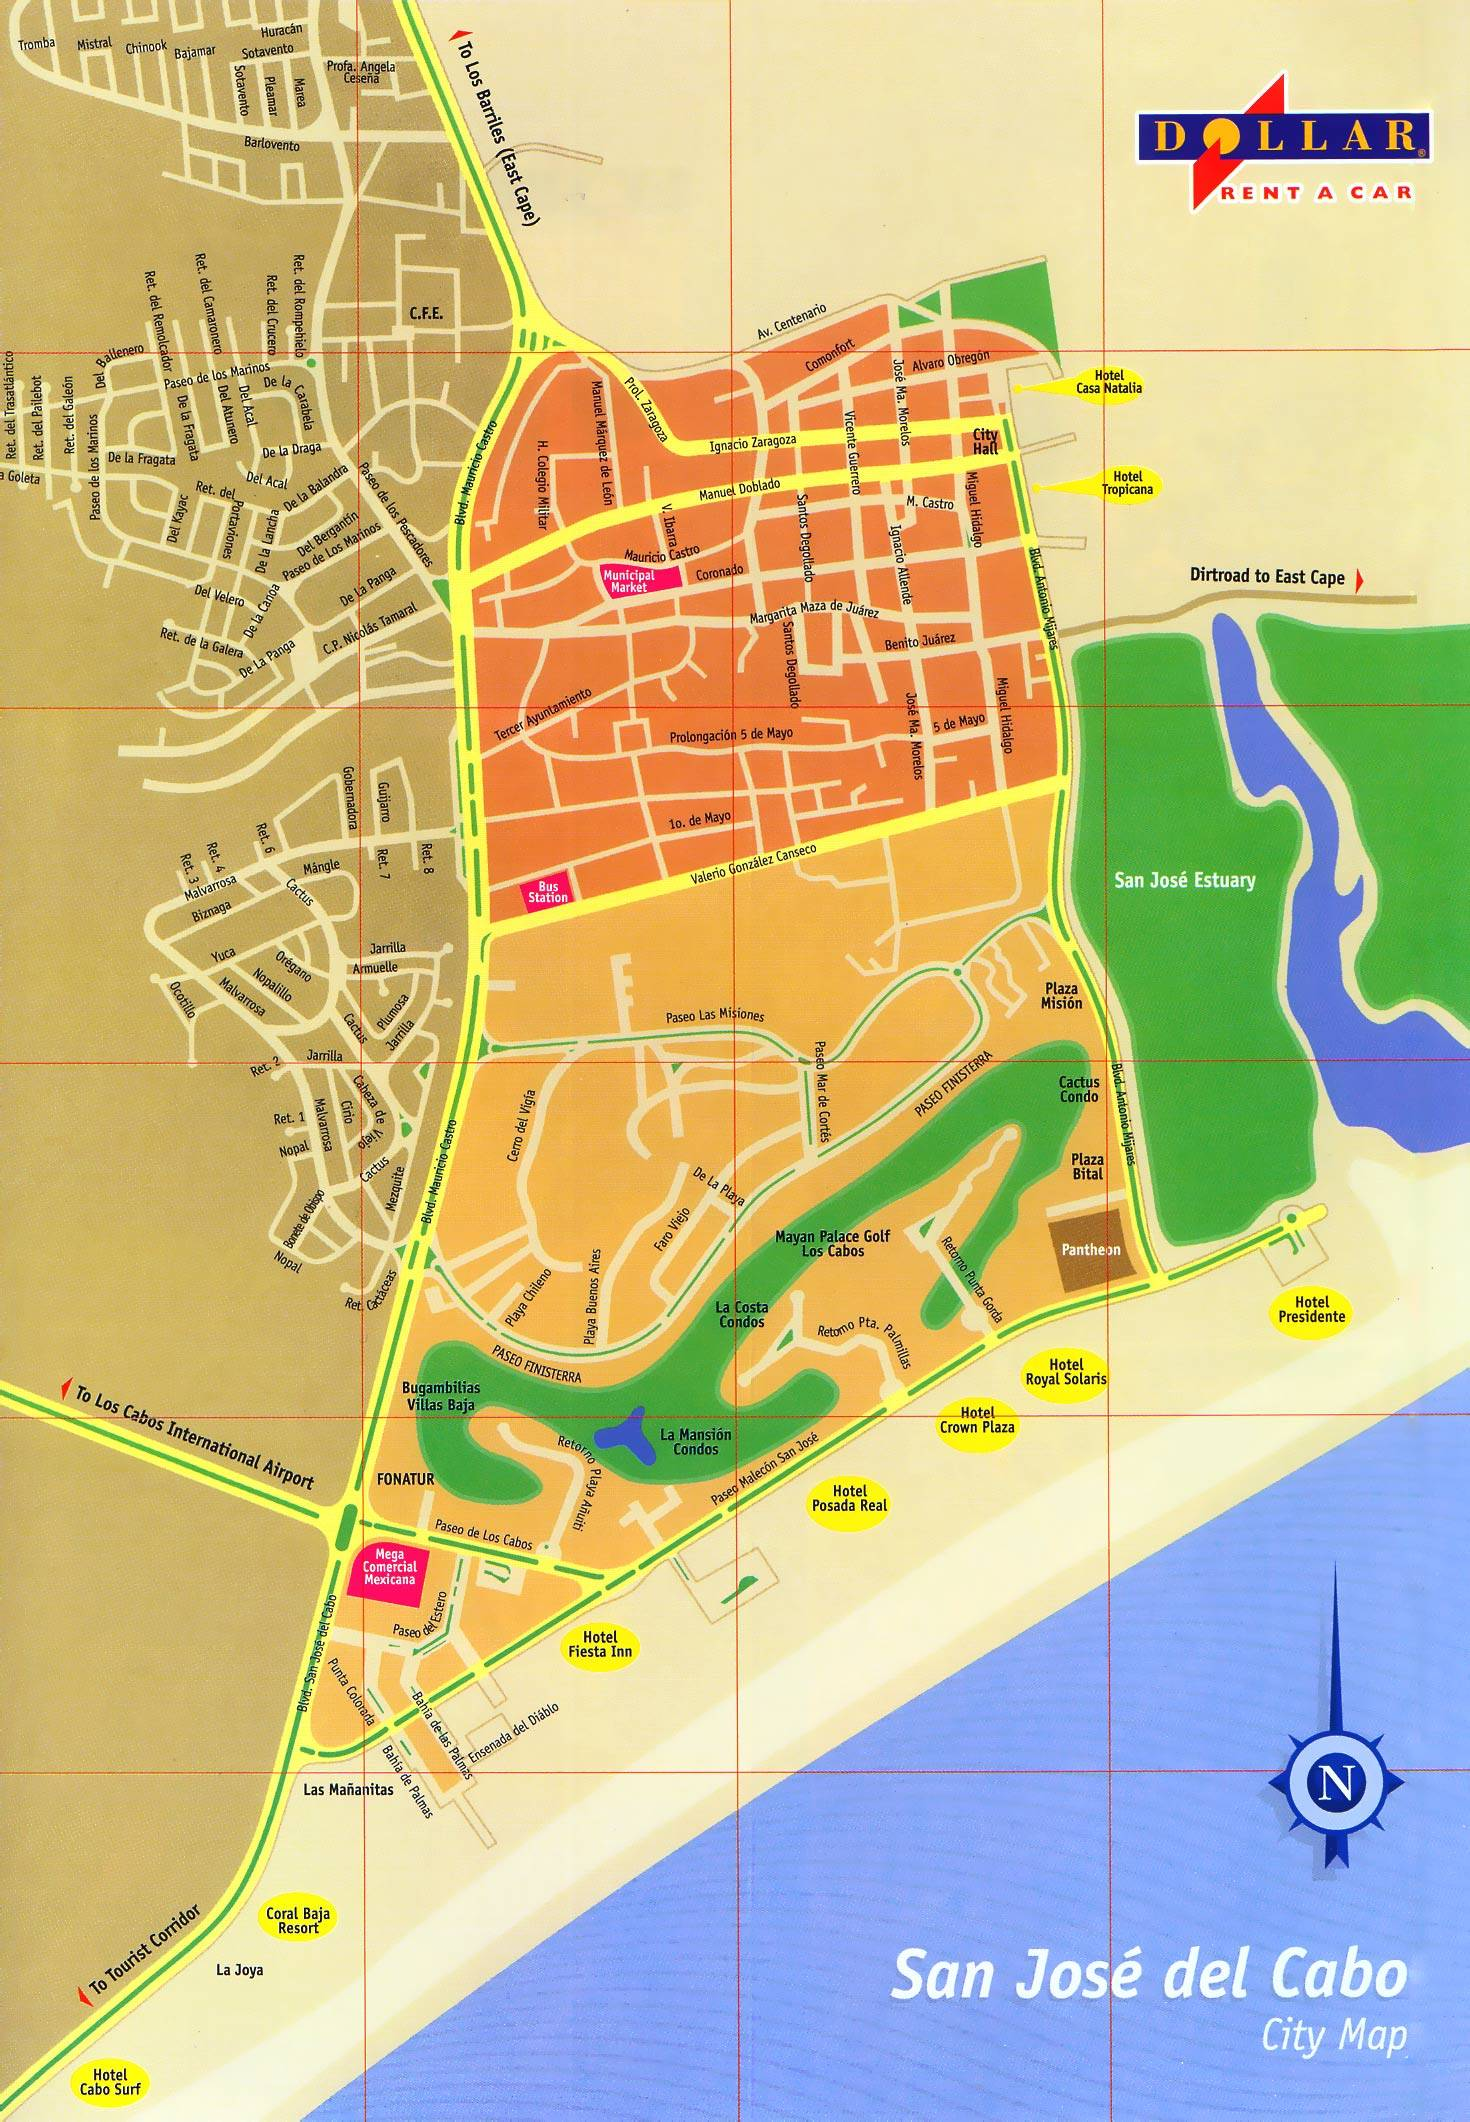 Large San Jose del Cabo Maps for Free Download and Print High